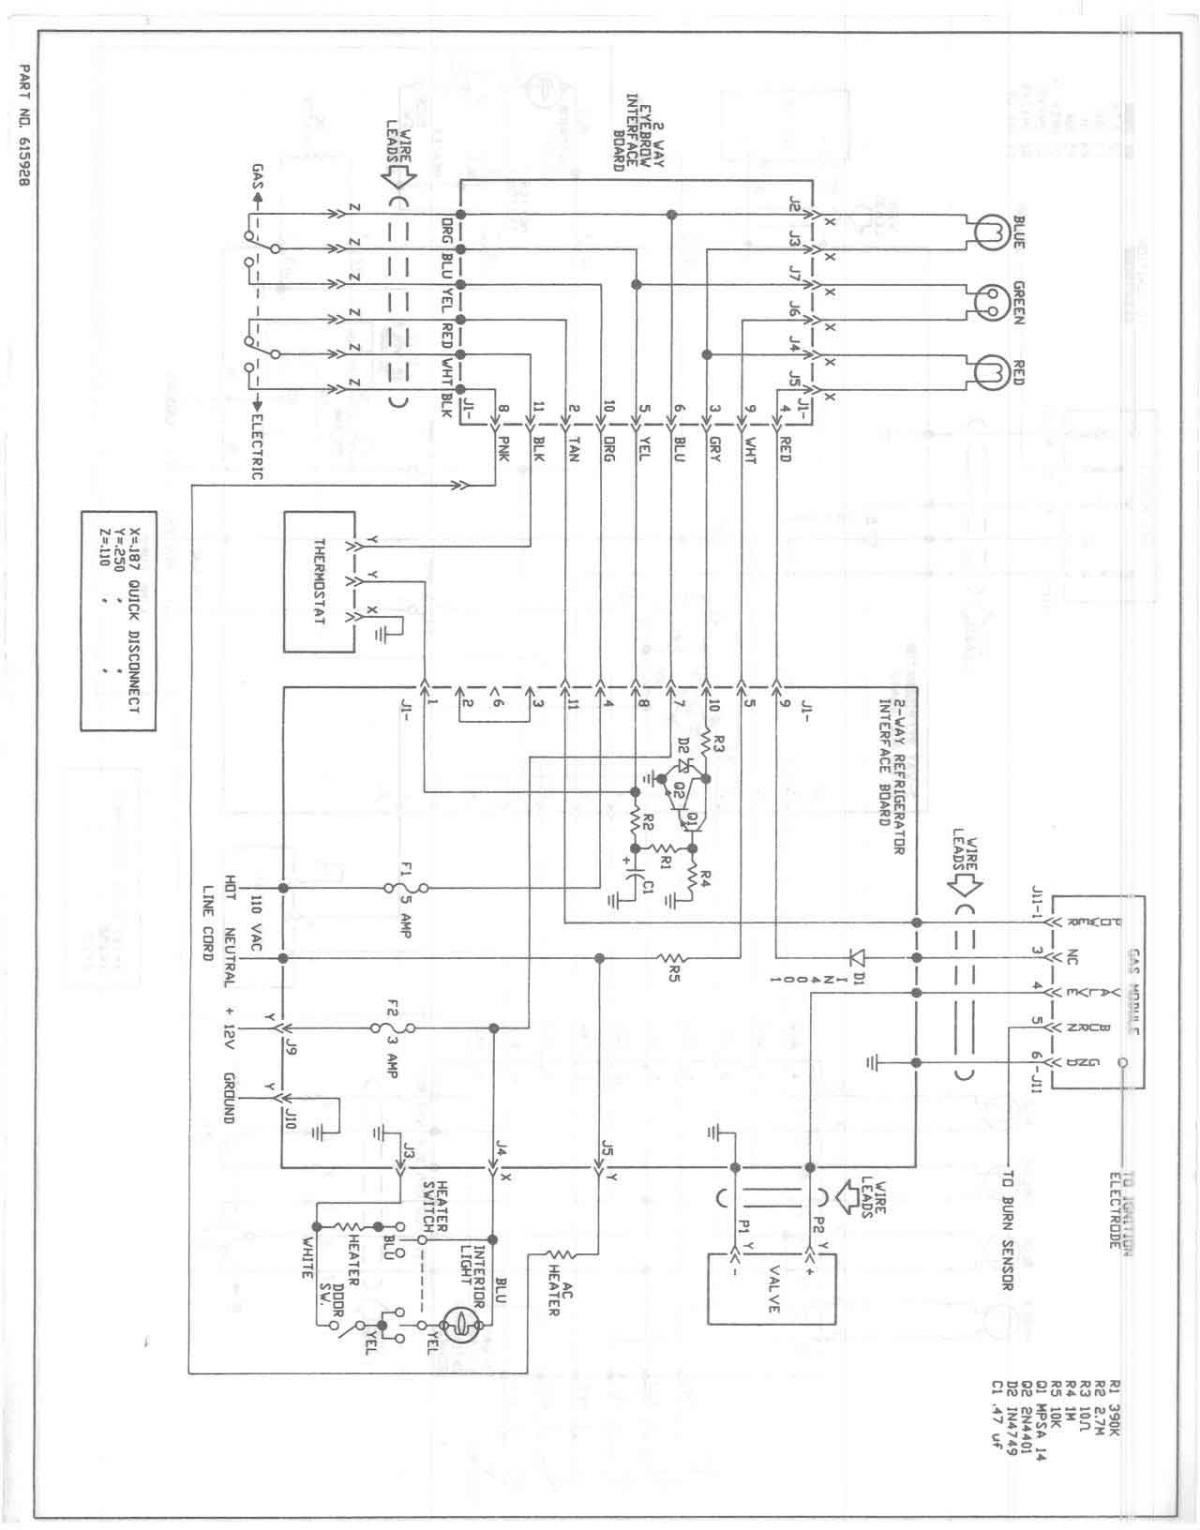 Awesome norcold refrigerator wiring diagram photos best image scintillating norcold control board wiring diagram images best asfbconference2016 Image collections